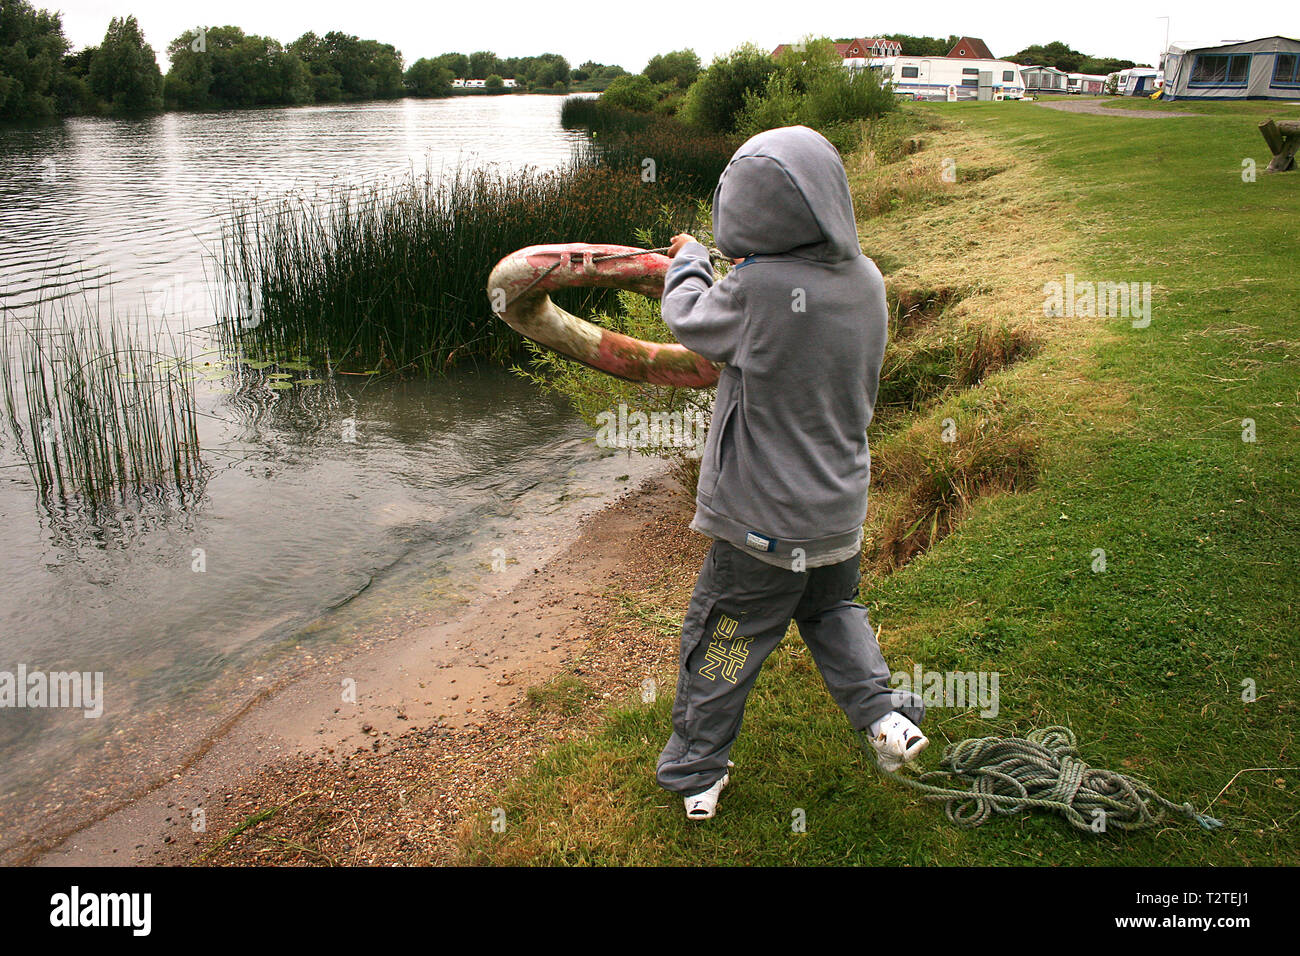 boy throwing lifebuoy to friend in river Stock Photo